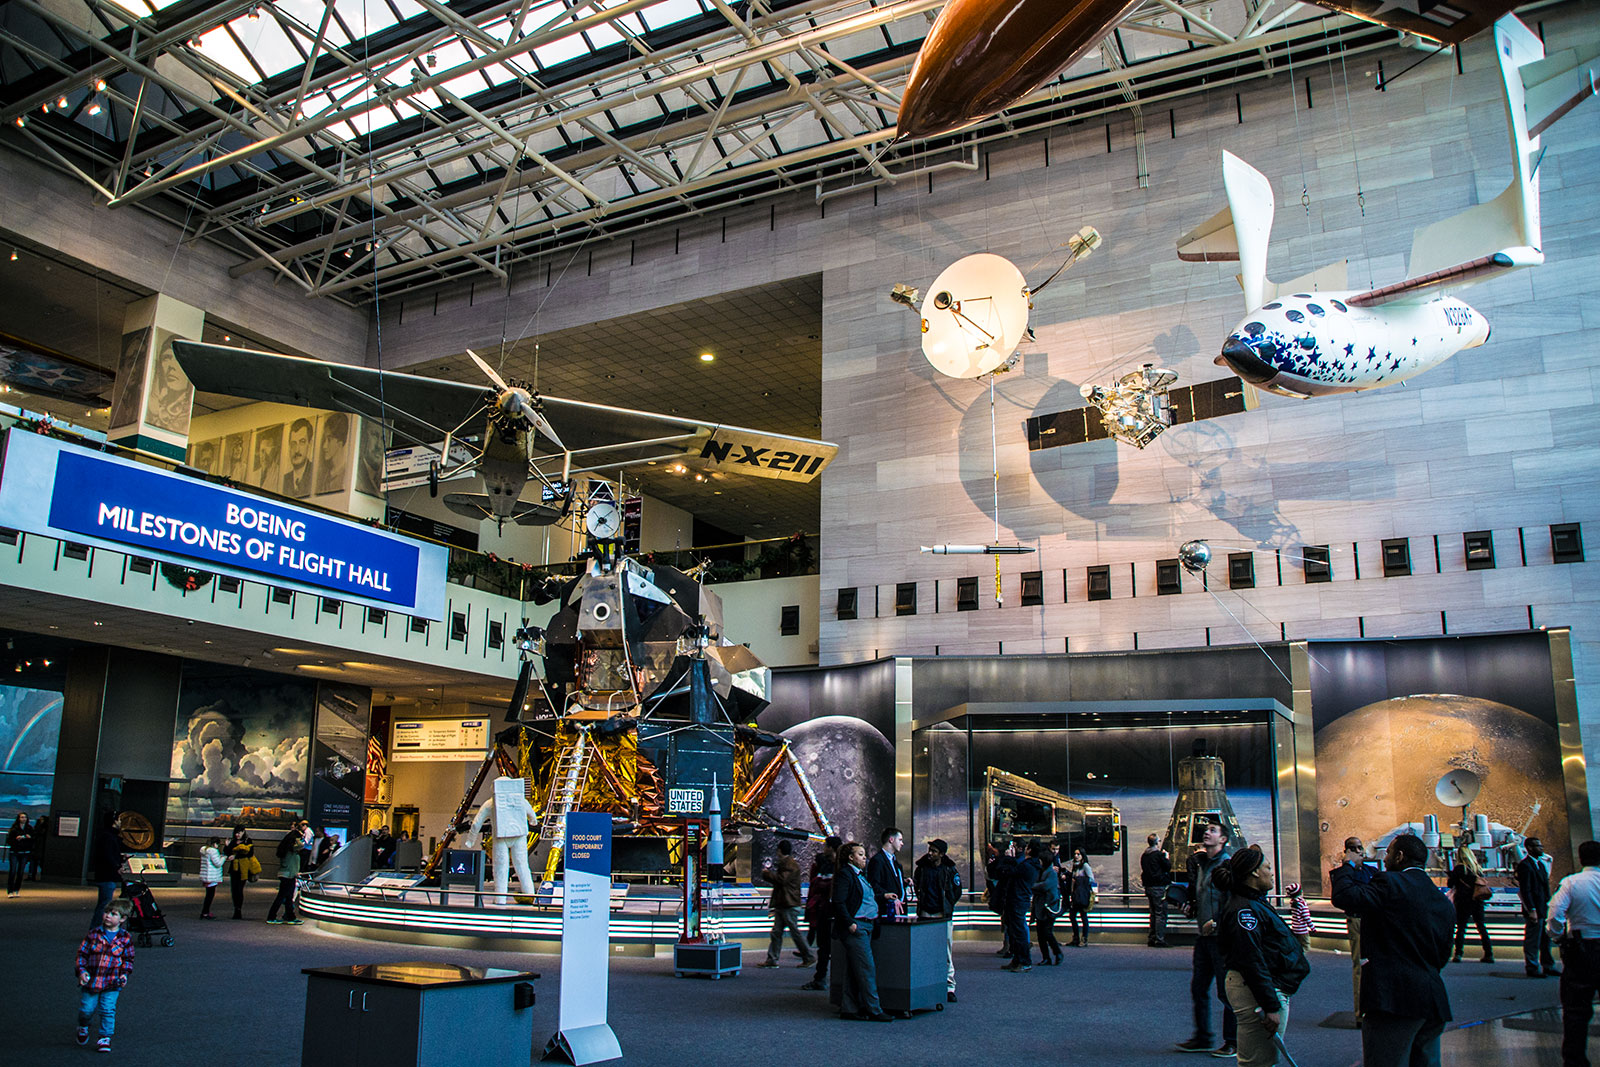 Museo Smithsonian de Washington - excursiones desde Nueva York